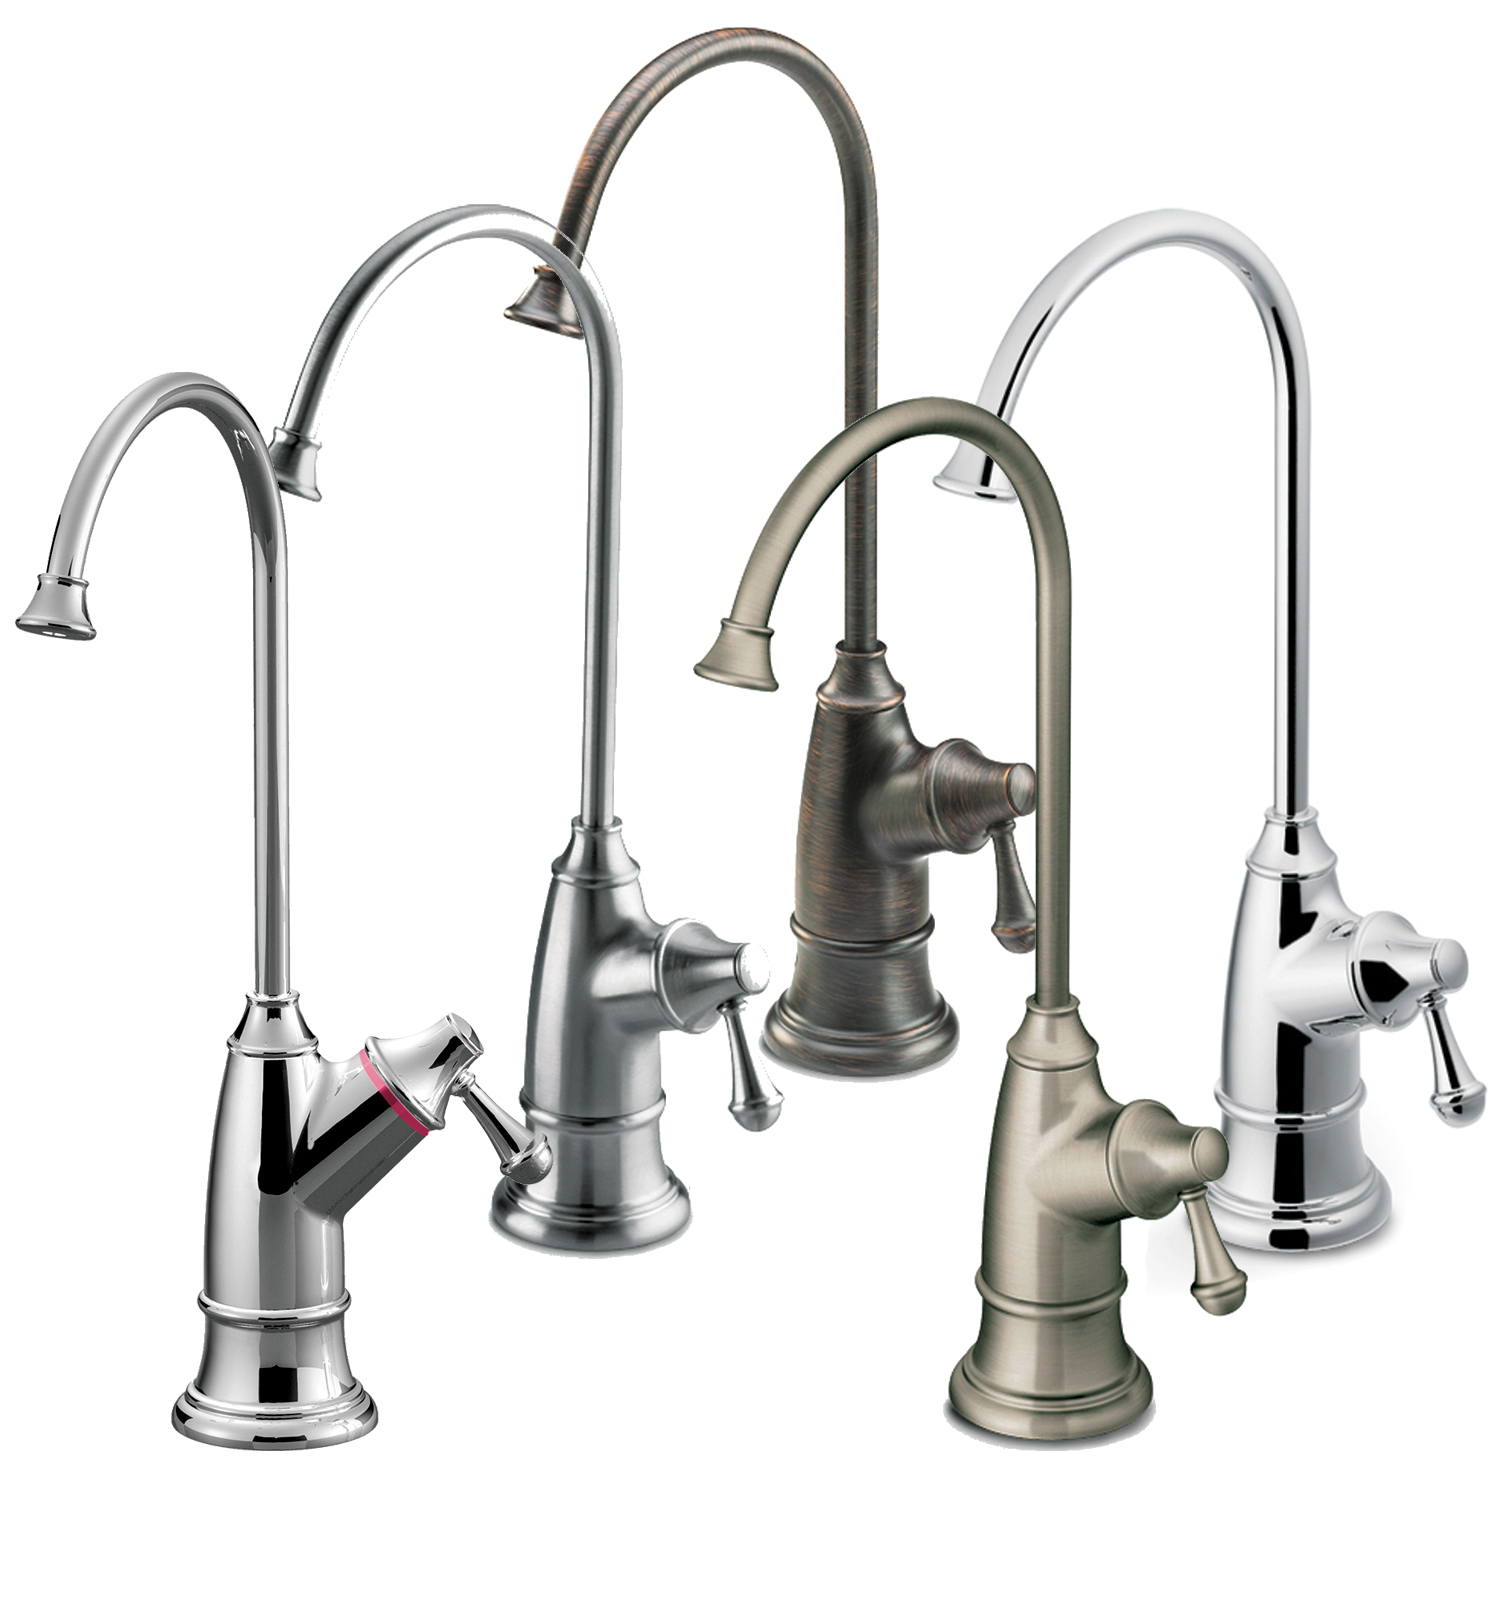 Tomlinson Faucets - Great Lakes International, Inc.